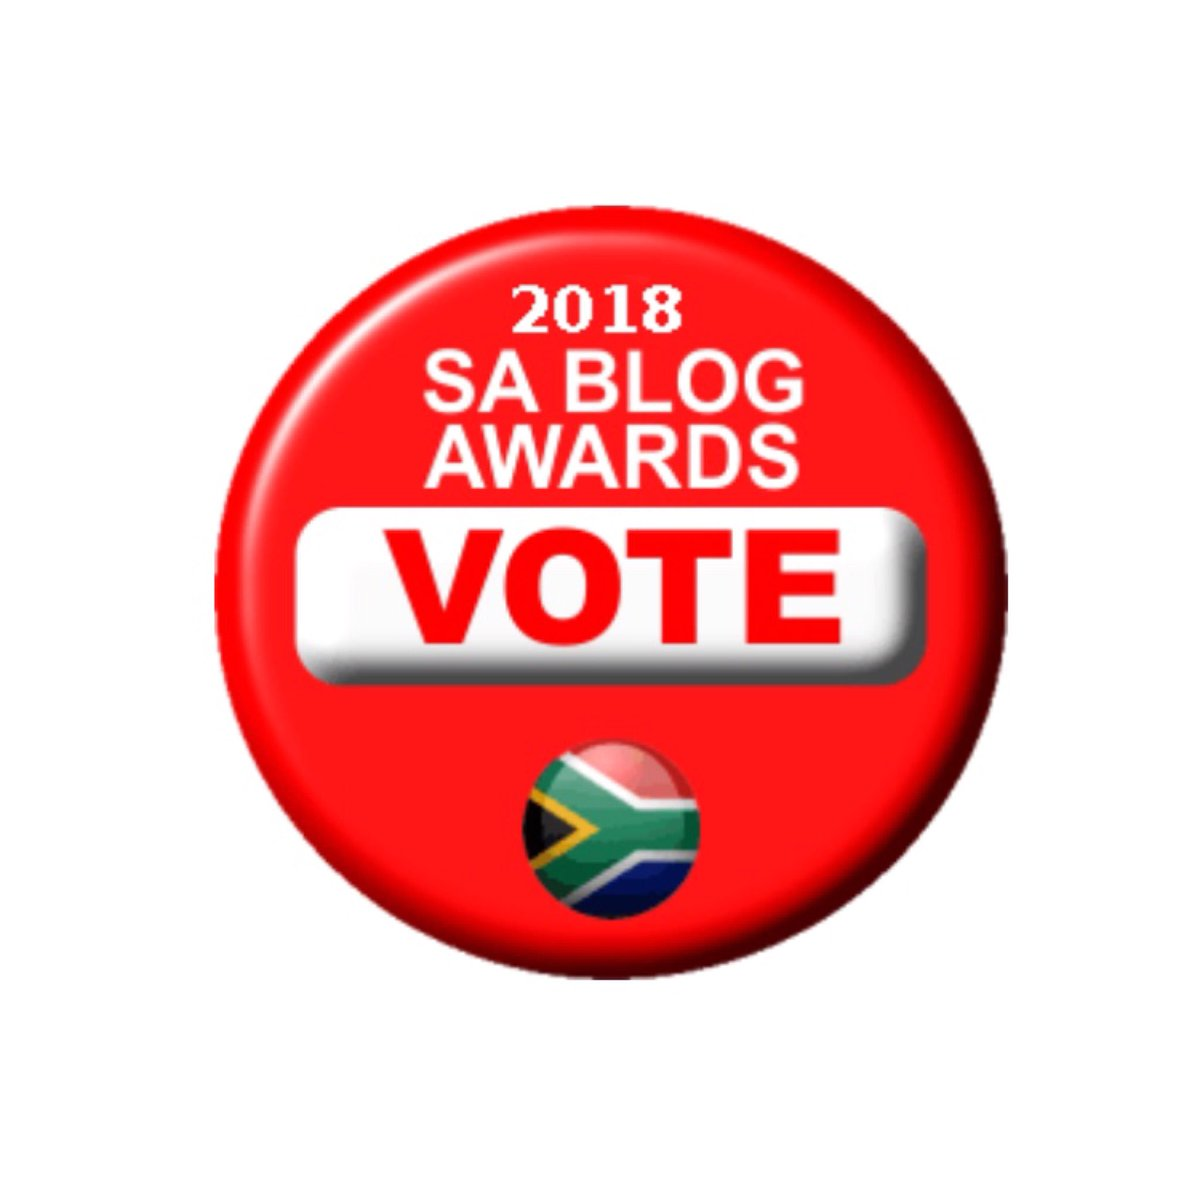 Have you voted for us in the 2018 SA Blog Awards? Please do. We're nominated in two categories. Voting will take you less than 15 sec. Click here: https://t.co/8kXPLHhsw0 https://t.co/pOkB56AJAf